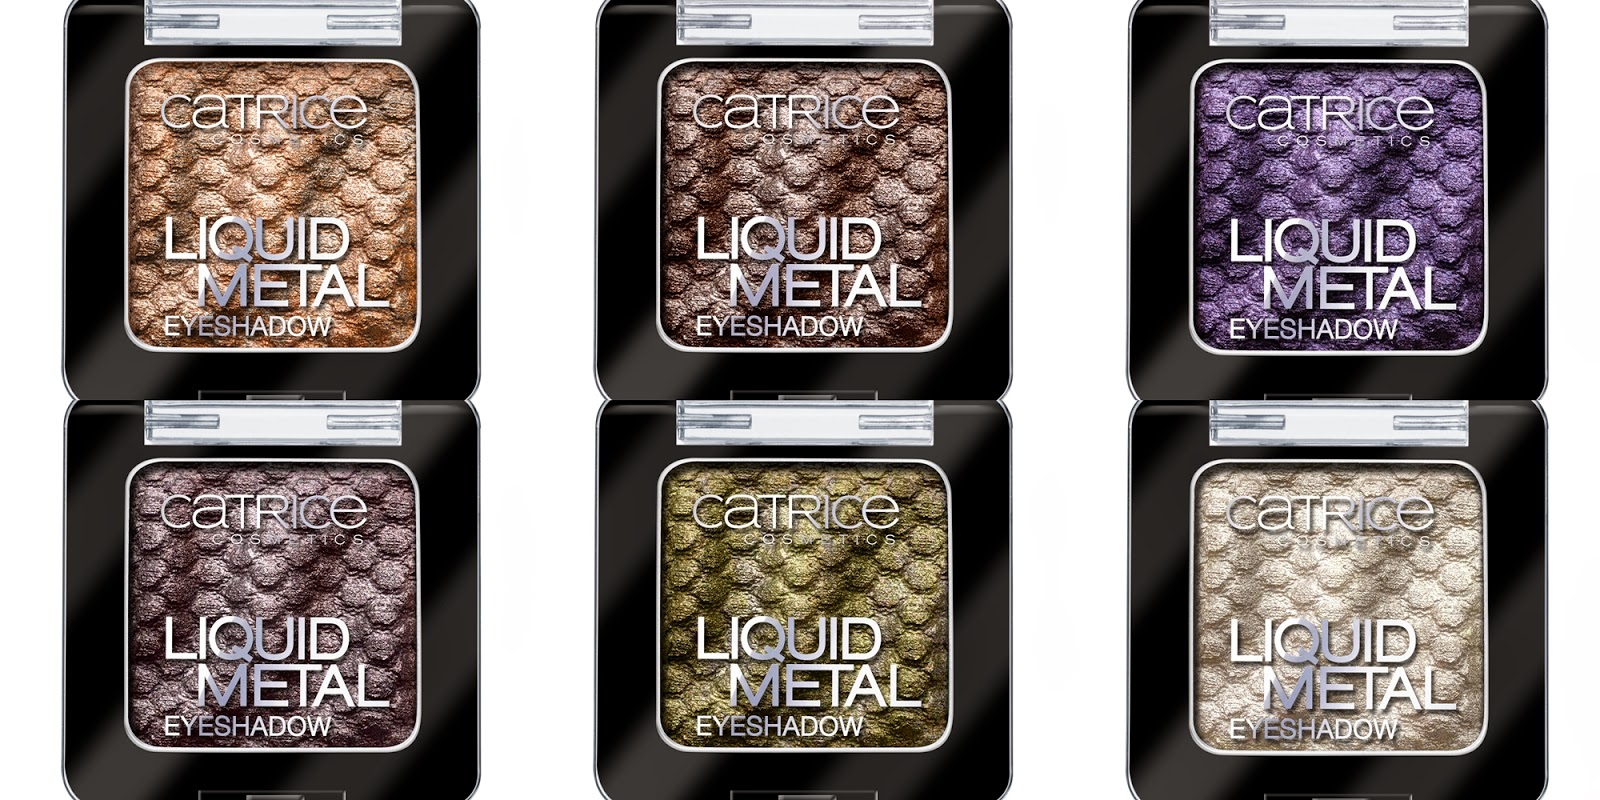 catrice liquid metal eye shadow 1